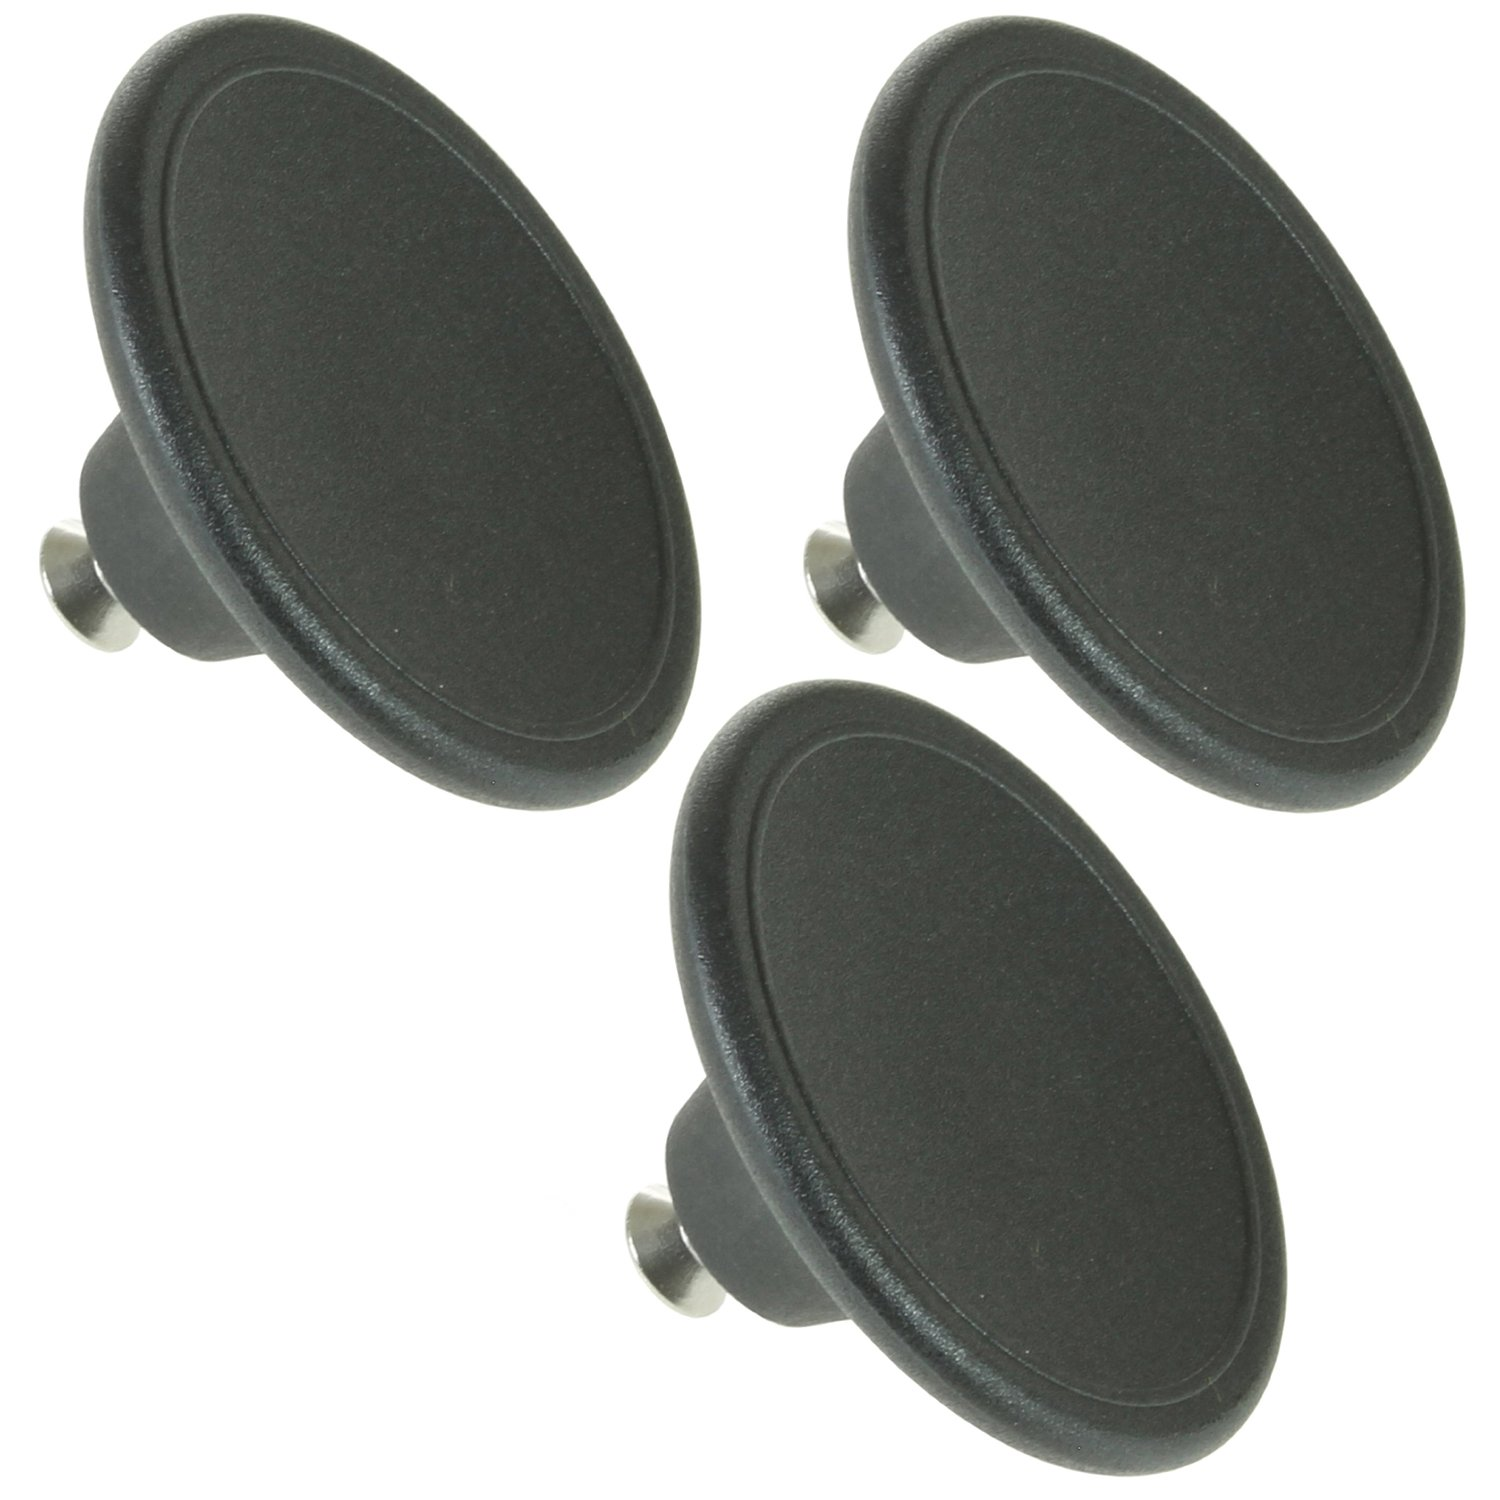 Spares2go Universal 4.5cm Small Handle Lid Knob For Pressure Cooker (Black, Pack Of 3) by Spares2go